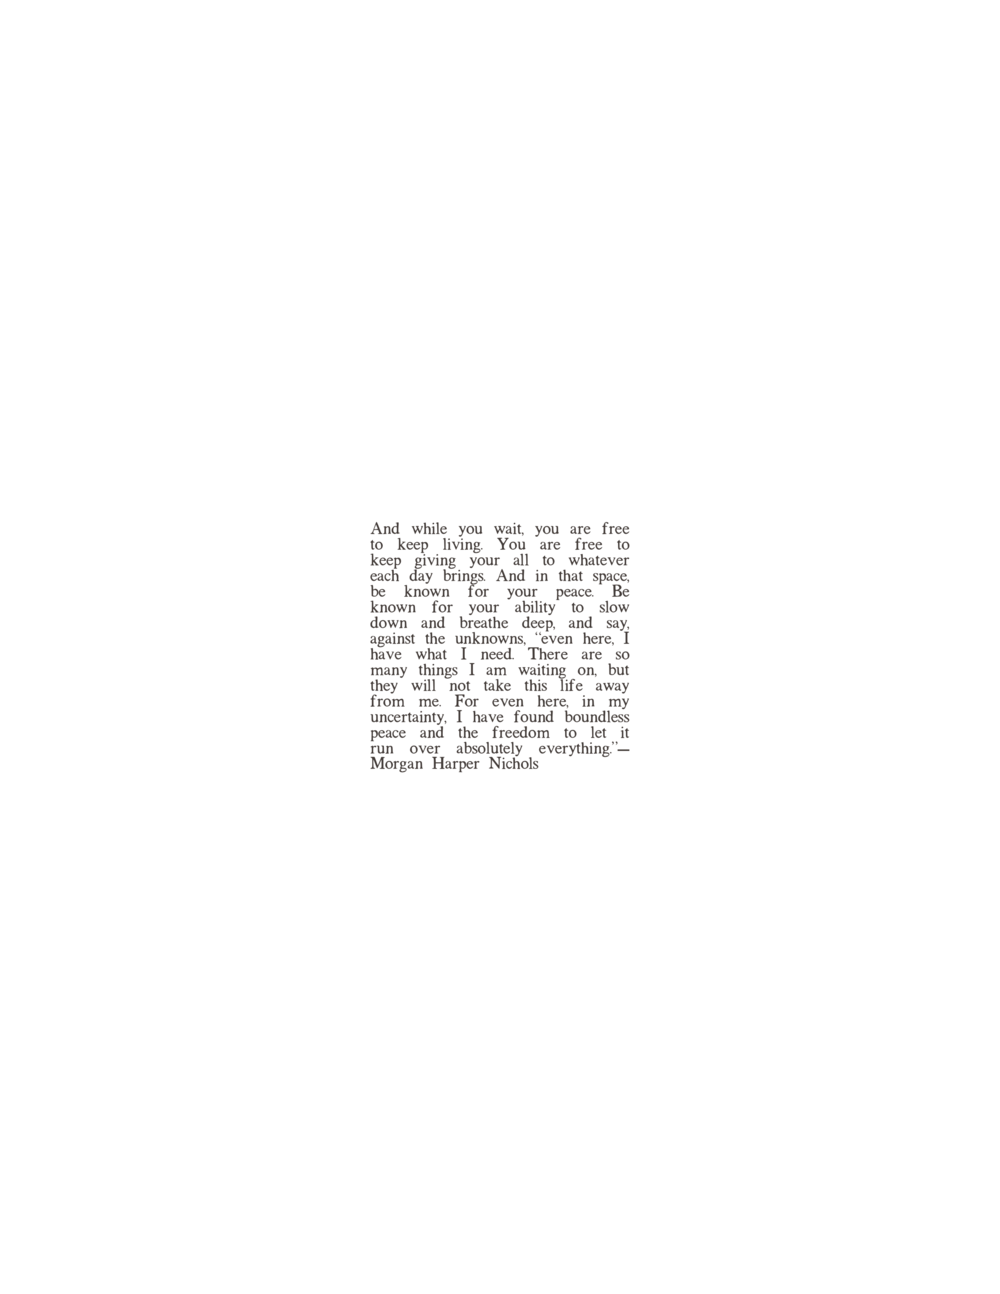 20190307(1).PNG